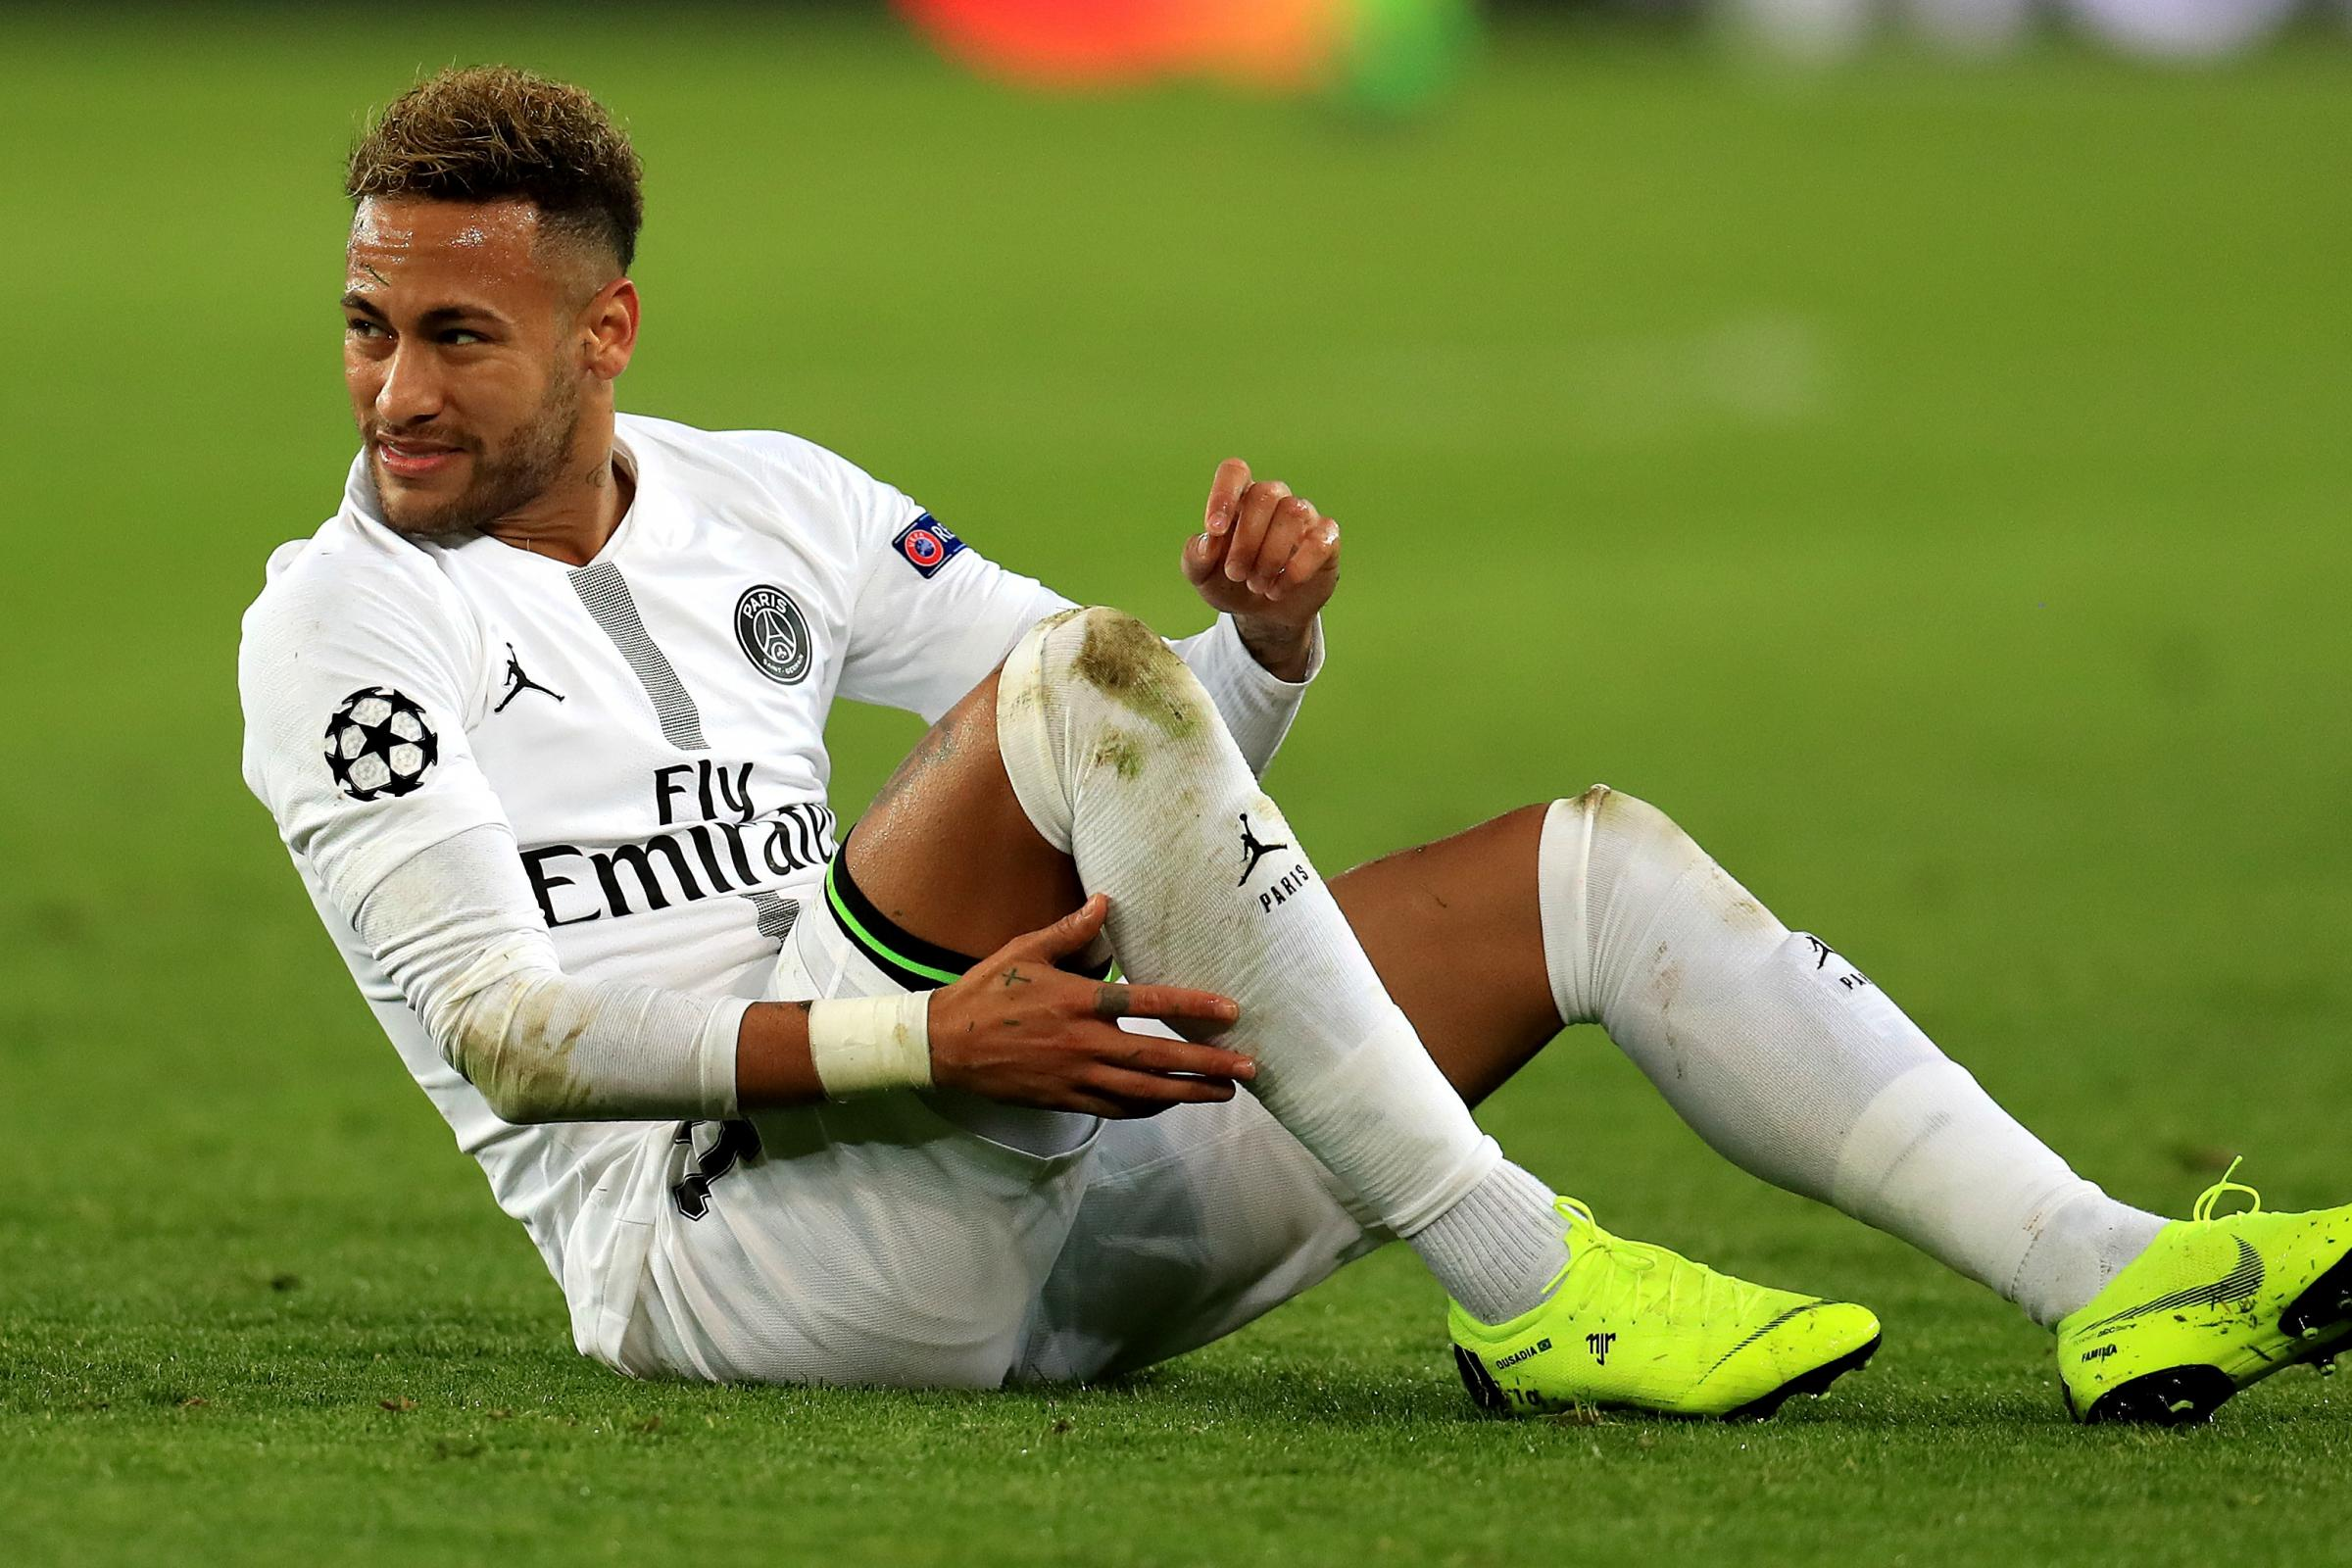 Neymar is recovering from a broken metatarsal and will miss both legs of Paris St Germain's Champions League tie against Manchester United